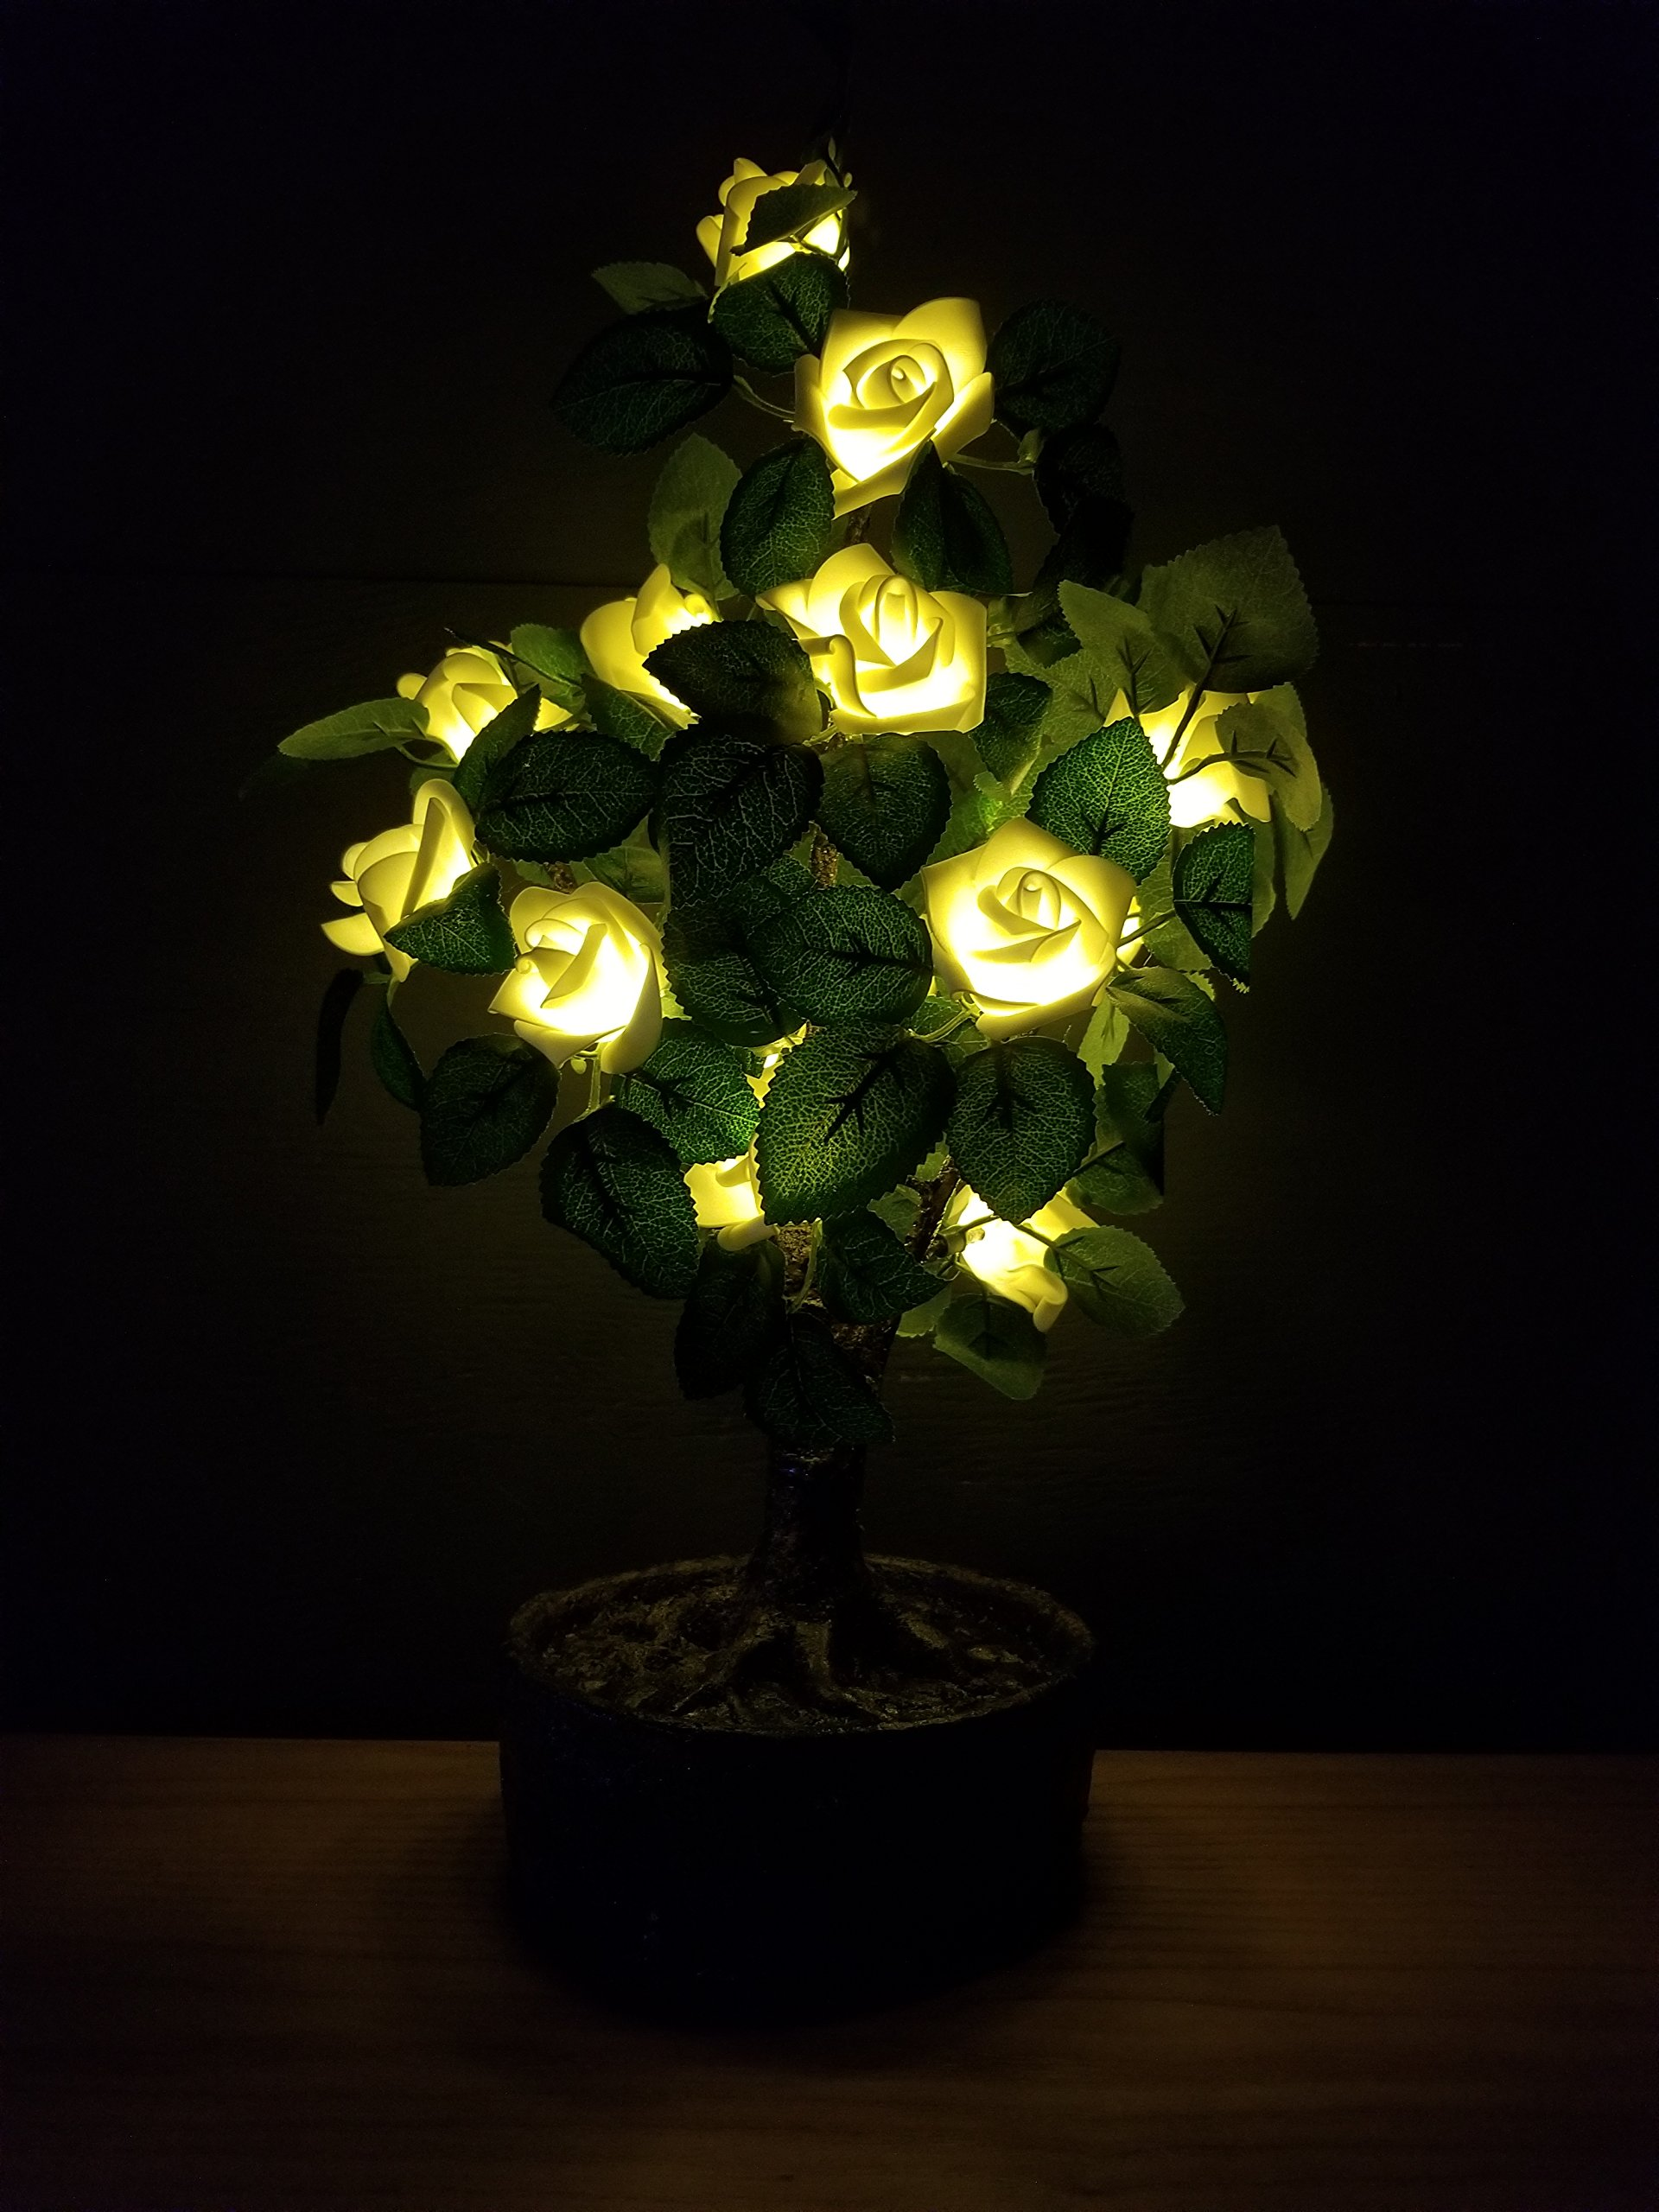 Bright Baum LED Light Artificial Bonsai Tree, 2.0-Feet, White Rose JUNO by Bright Baum